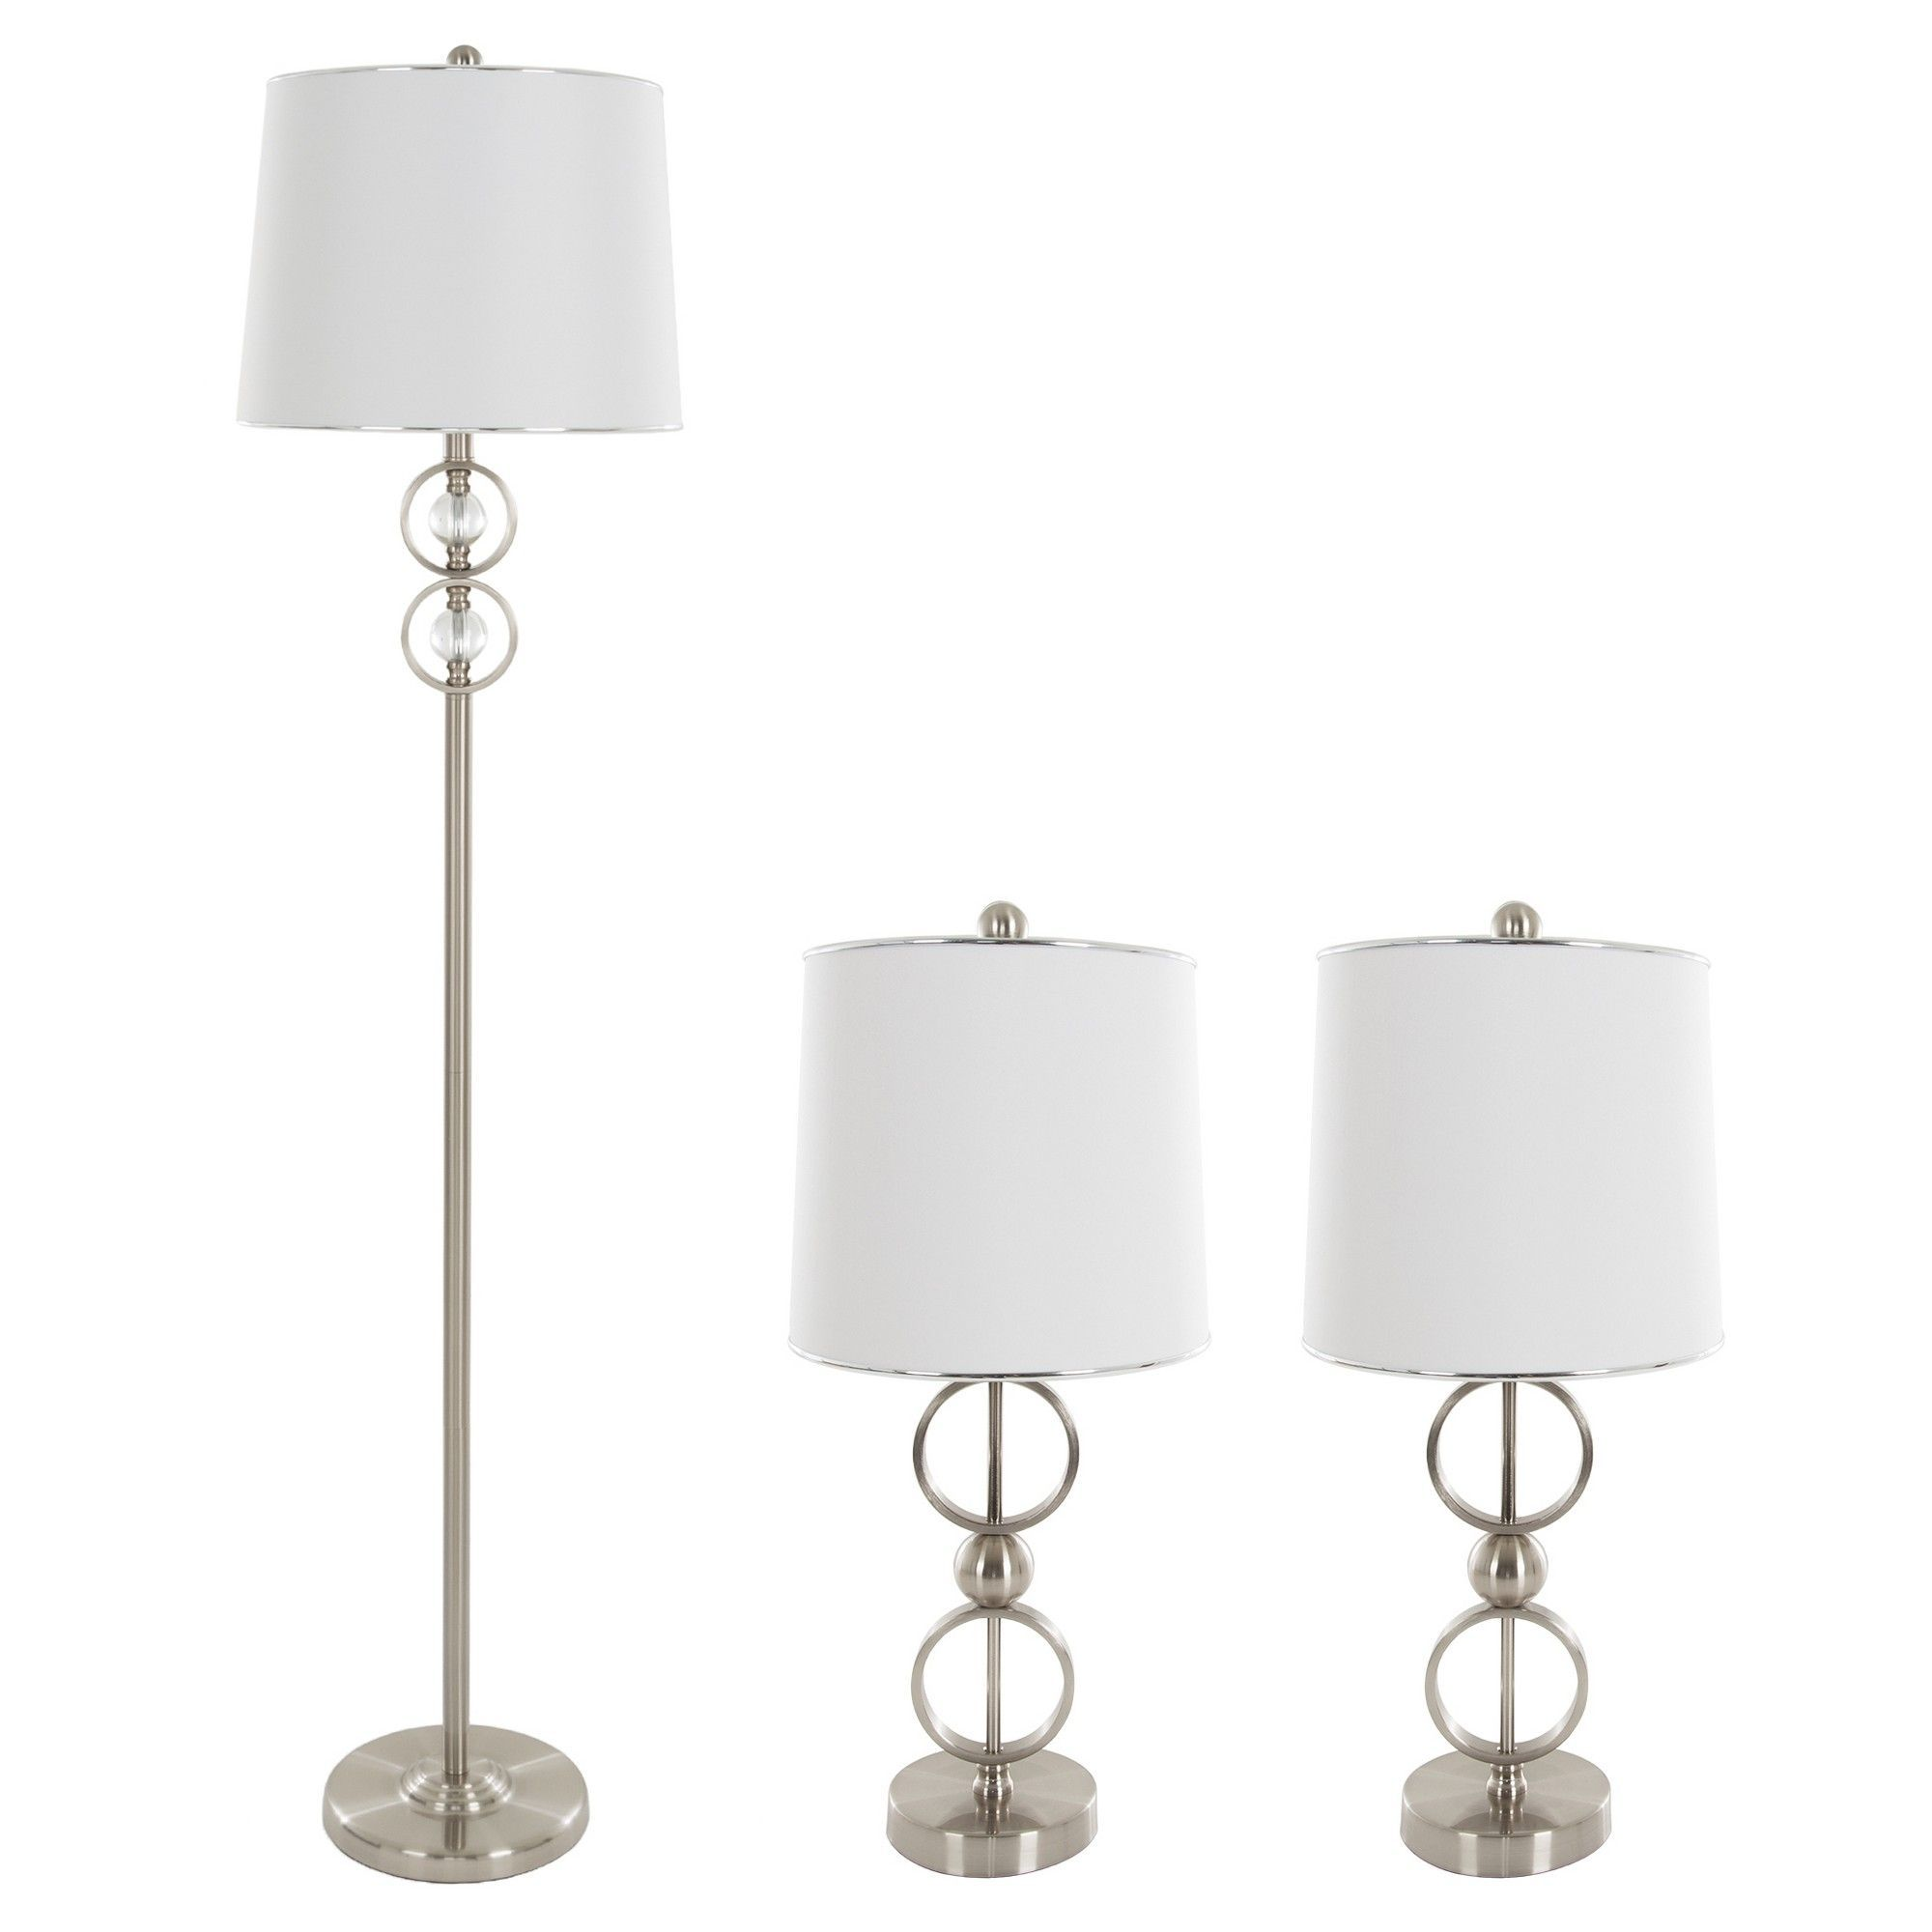 Table Lamps And Floor Lamp Modern Set Of 3 3 Led Bulbs Included